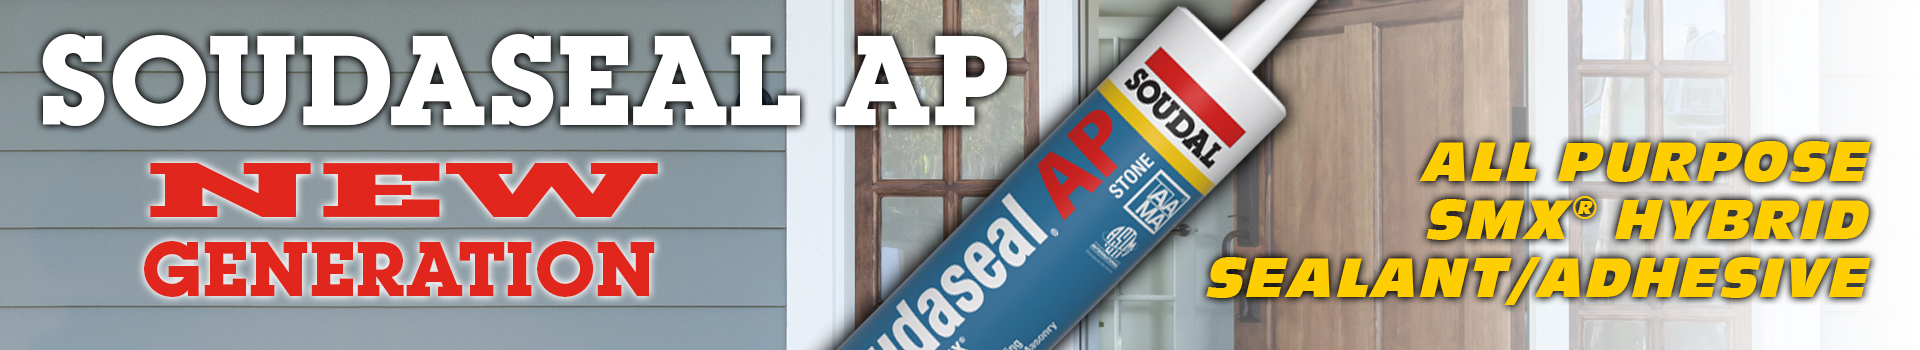 Soudalseal AP New Generation All Purpose SMX Hybrid Sealant/Adhesive